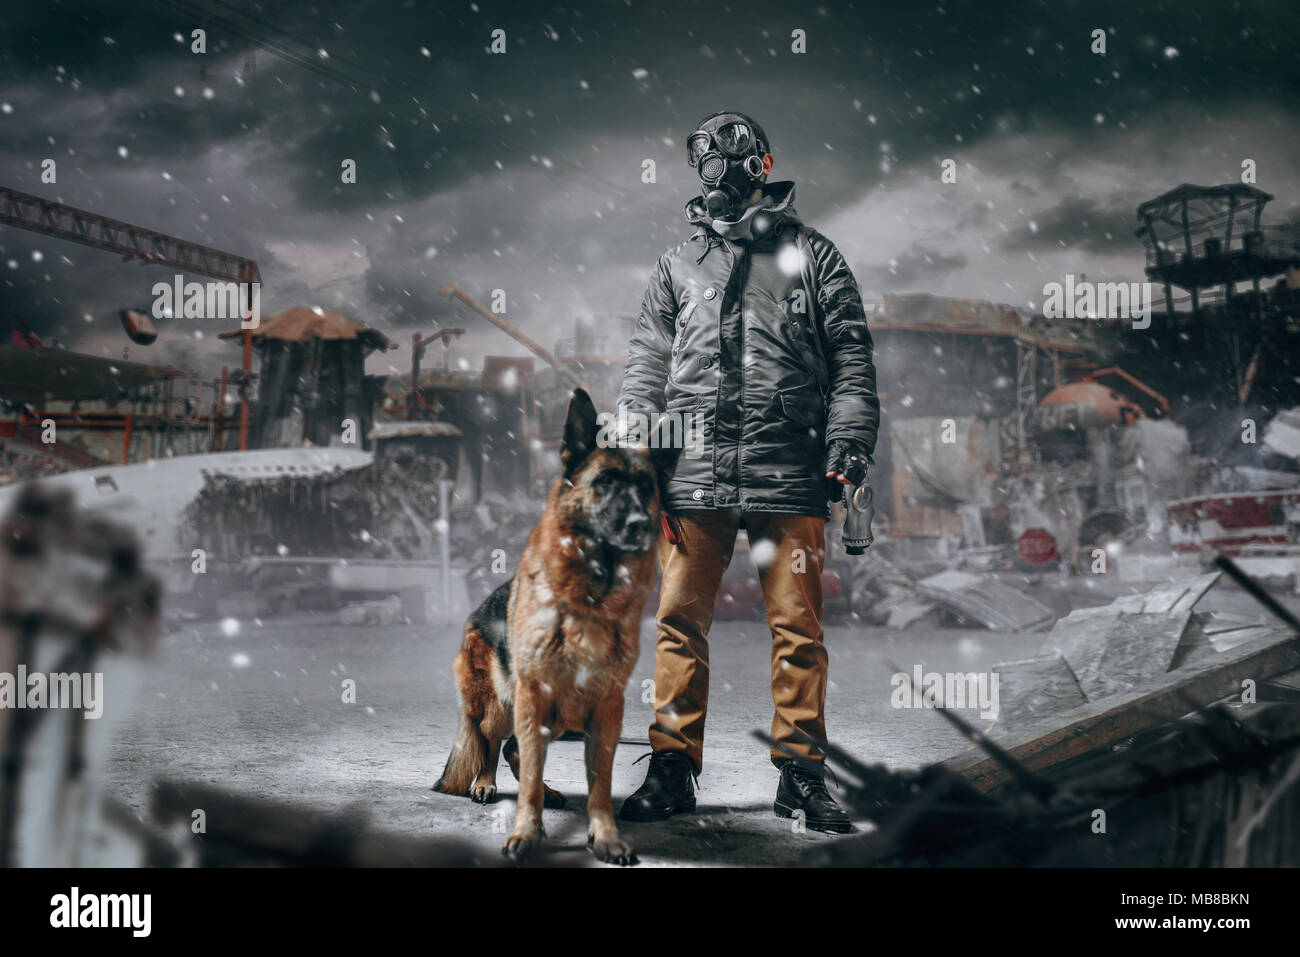 Stalker soldier in gas mask and dog against ruined buildings, radioactive zone, post apocalyptic world. Post-apocalypse lifestyle on ruins, doomsday,  - Stock Image